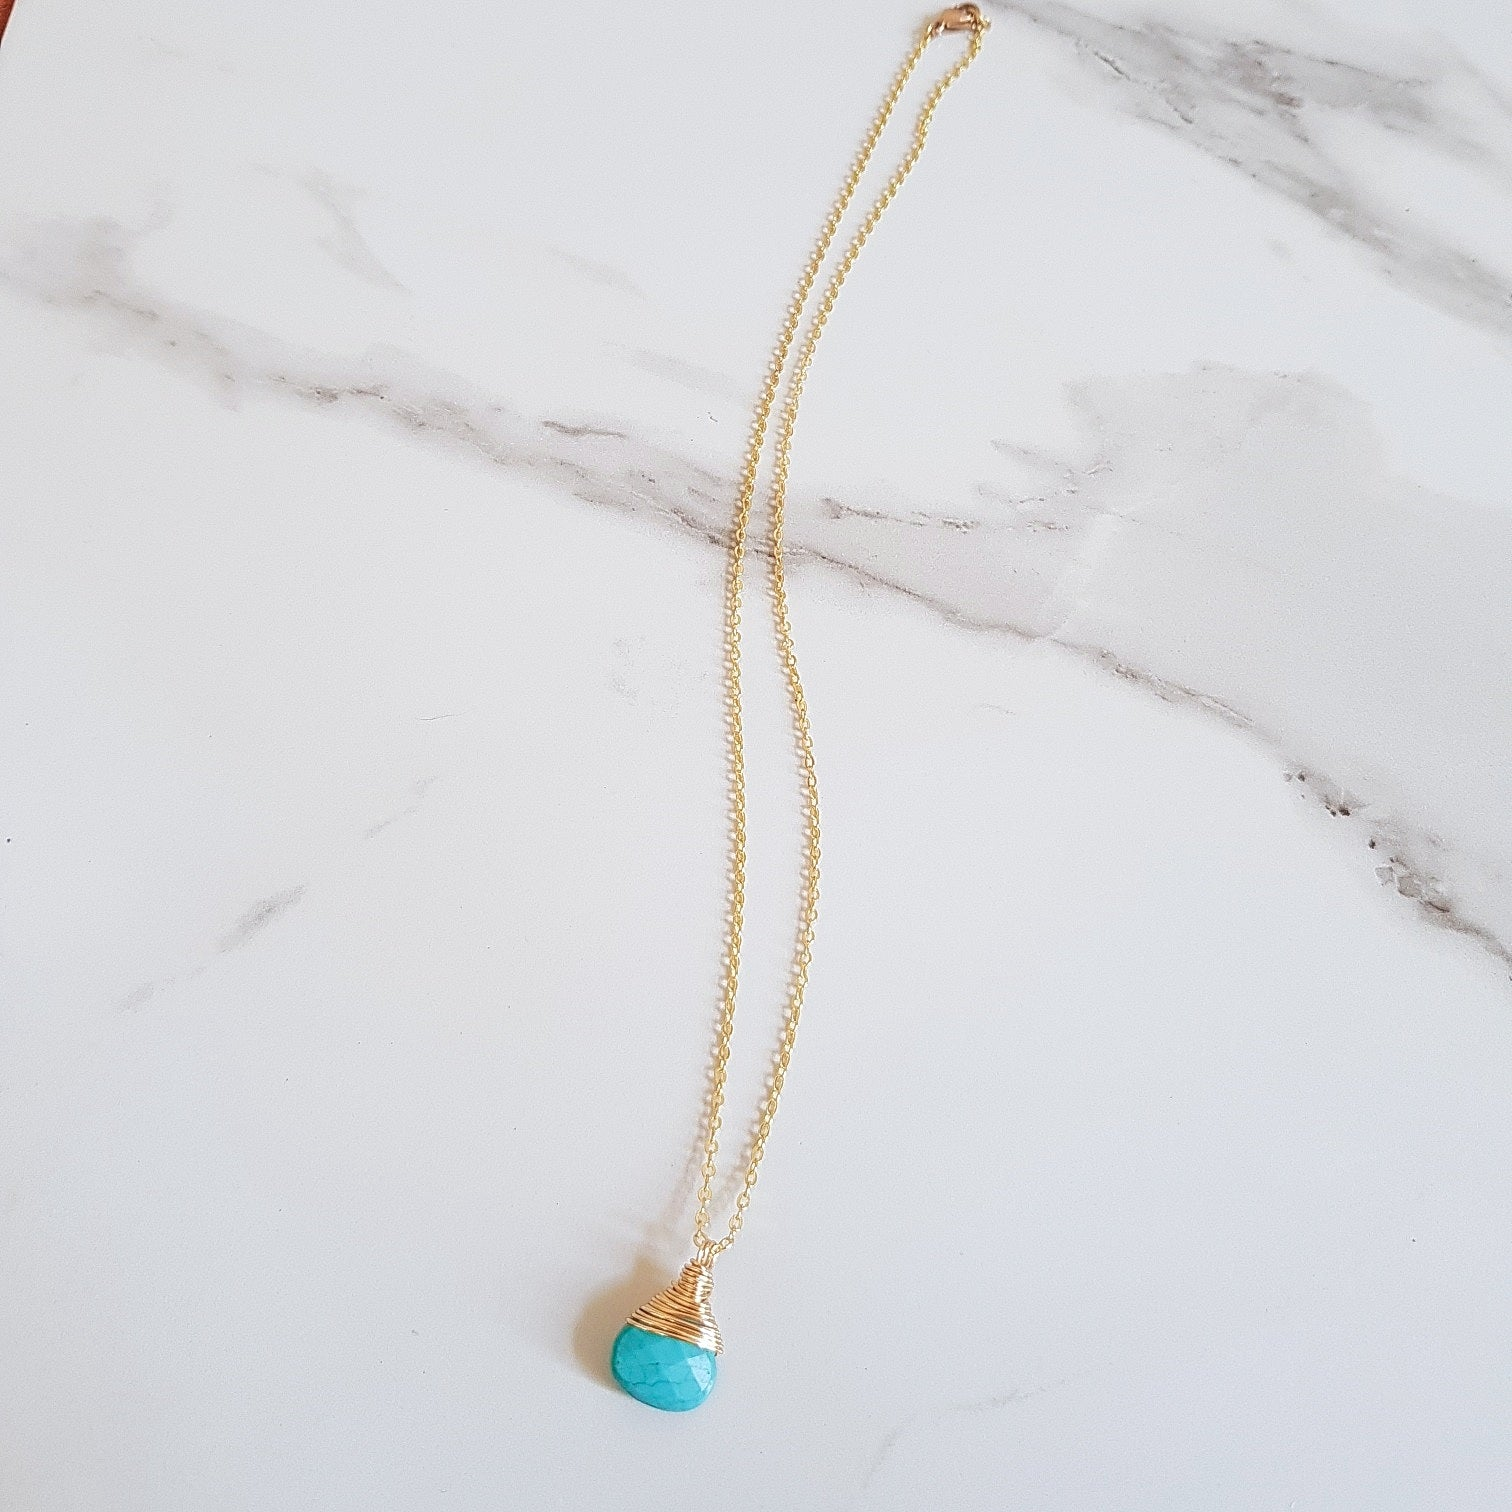 Bay Dainty Necklace - Turquoise